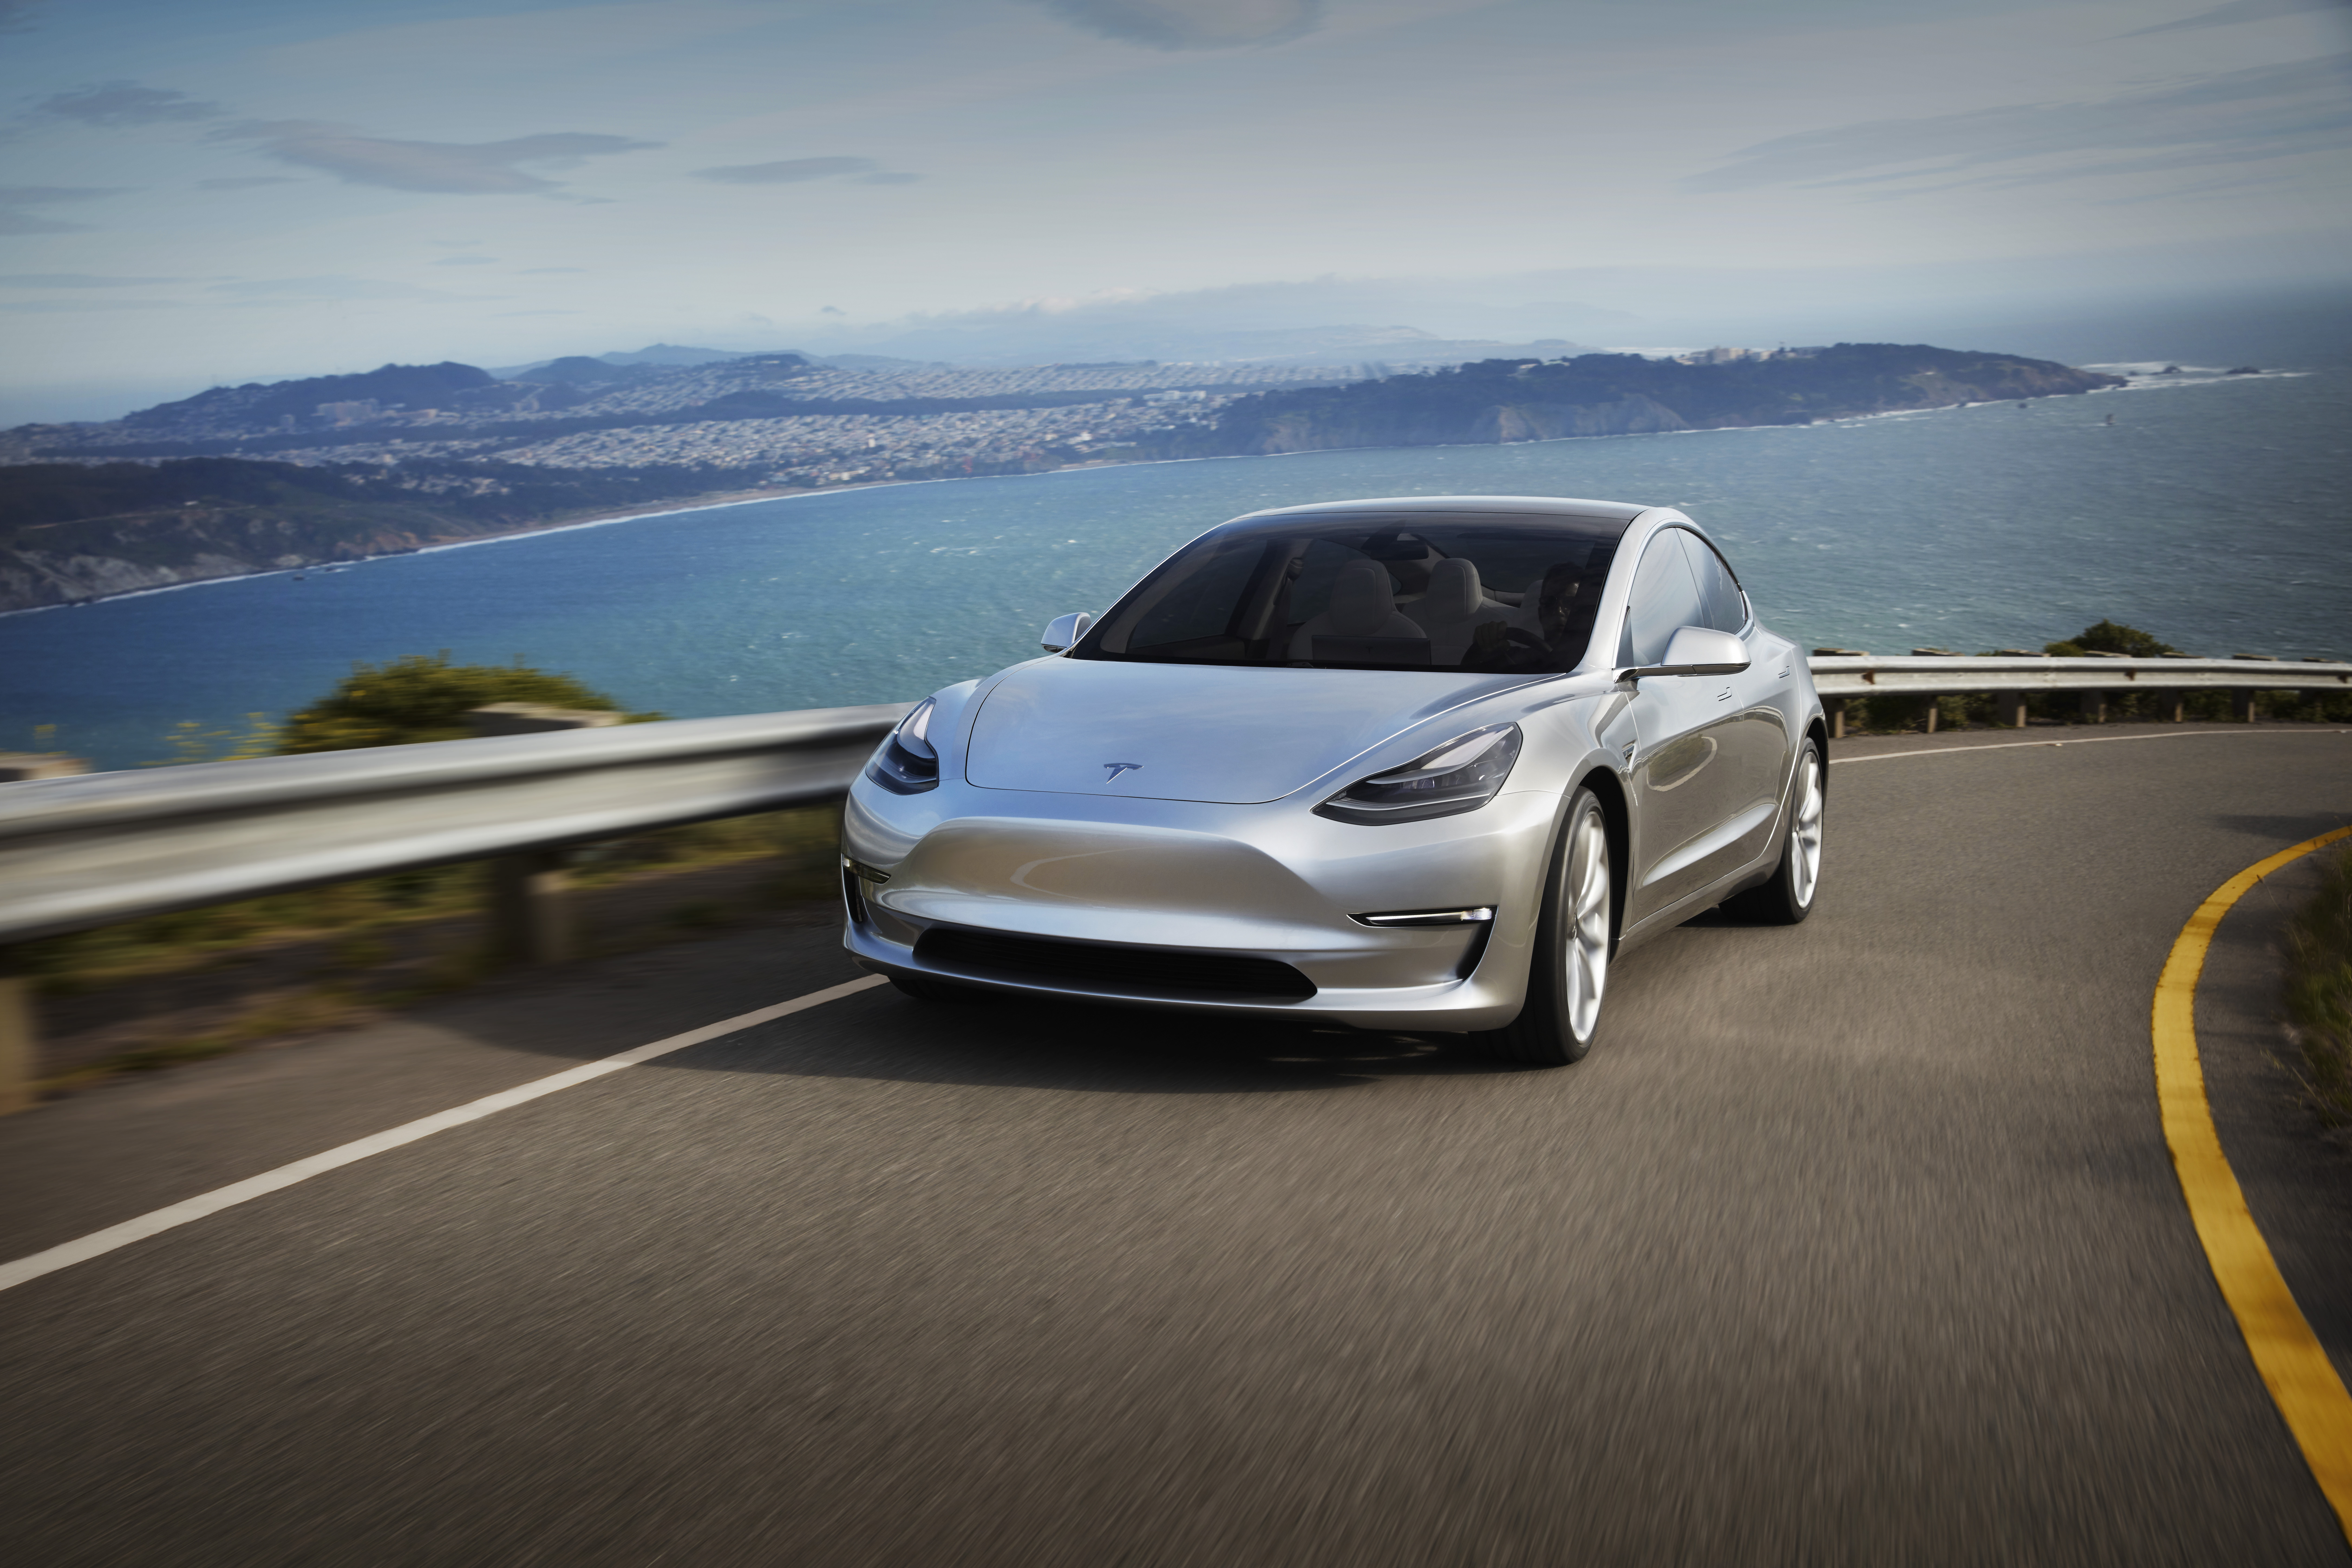 Tesla Model 3 Exclusive Leaked Specs 300kw Inverter Architecture Engine Diagram The Is Also Expected To Be Much Cheaper On A Dollar Per Power Capacity Basis Than Even Teslas Most Recent Dual Motor System